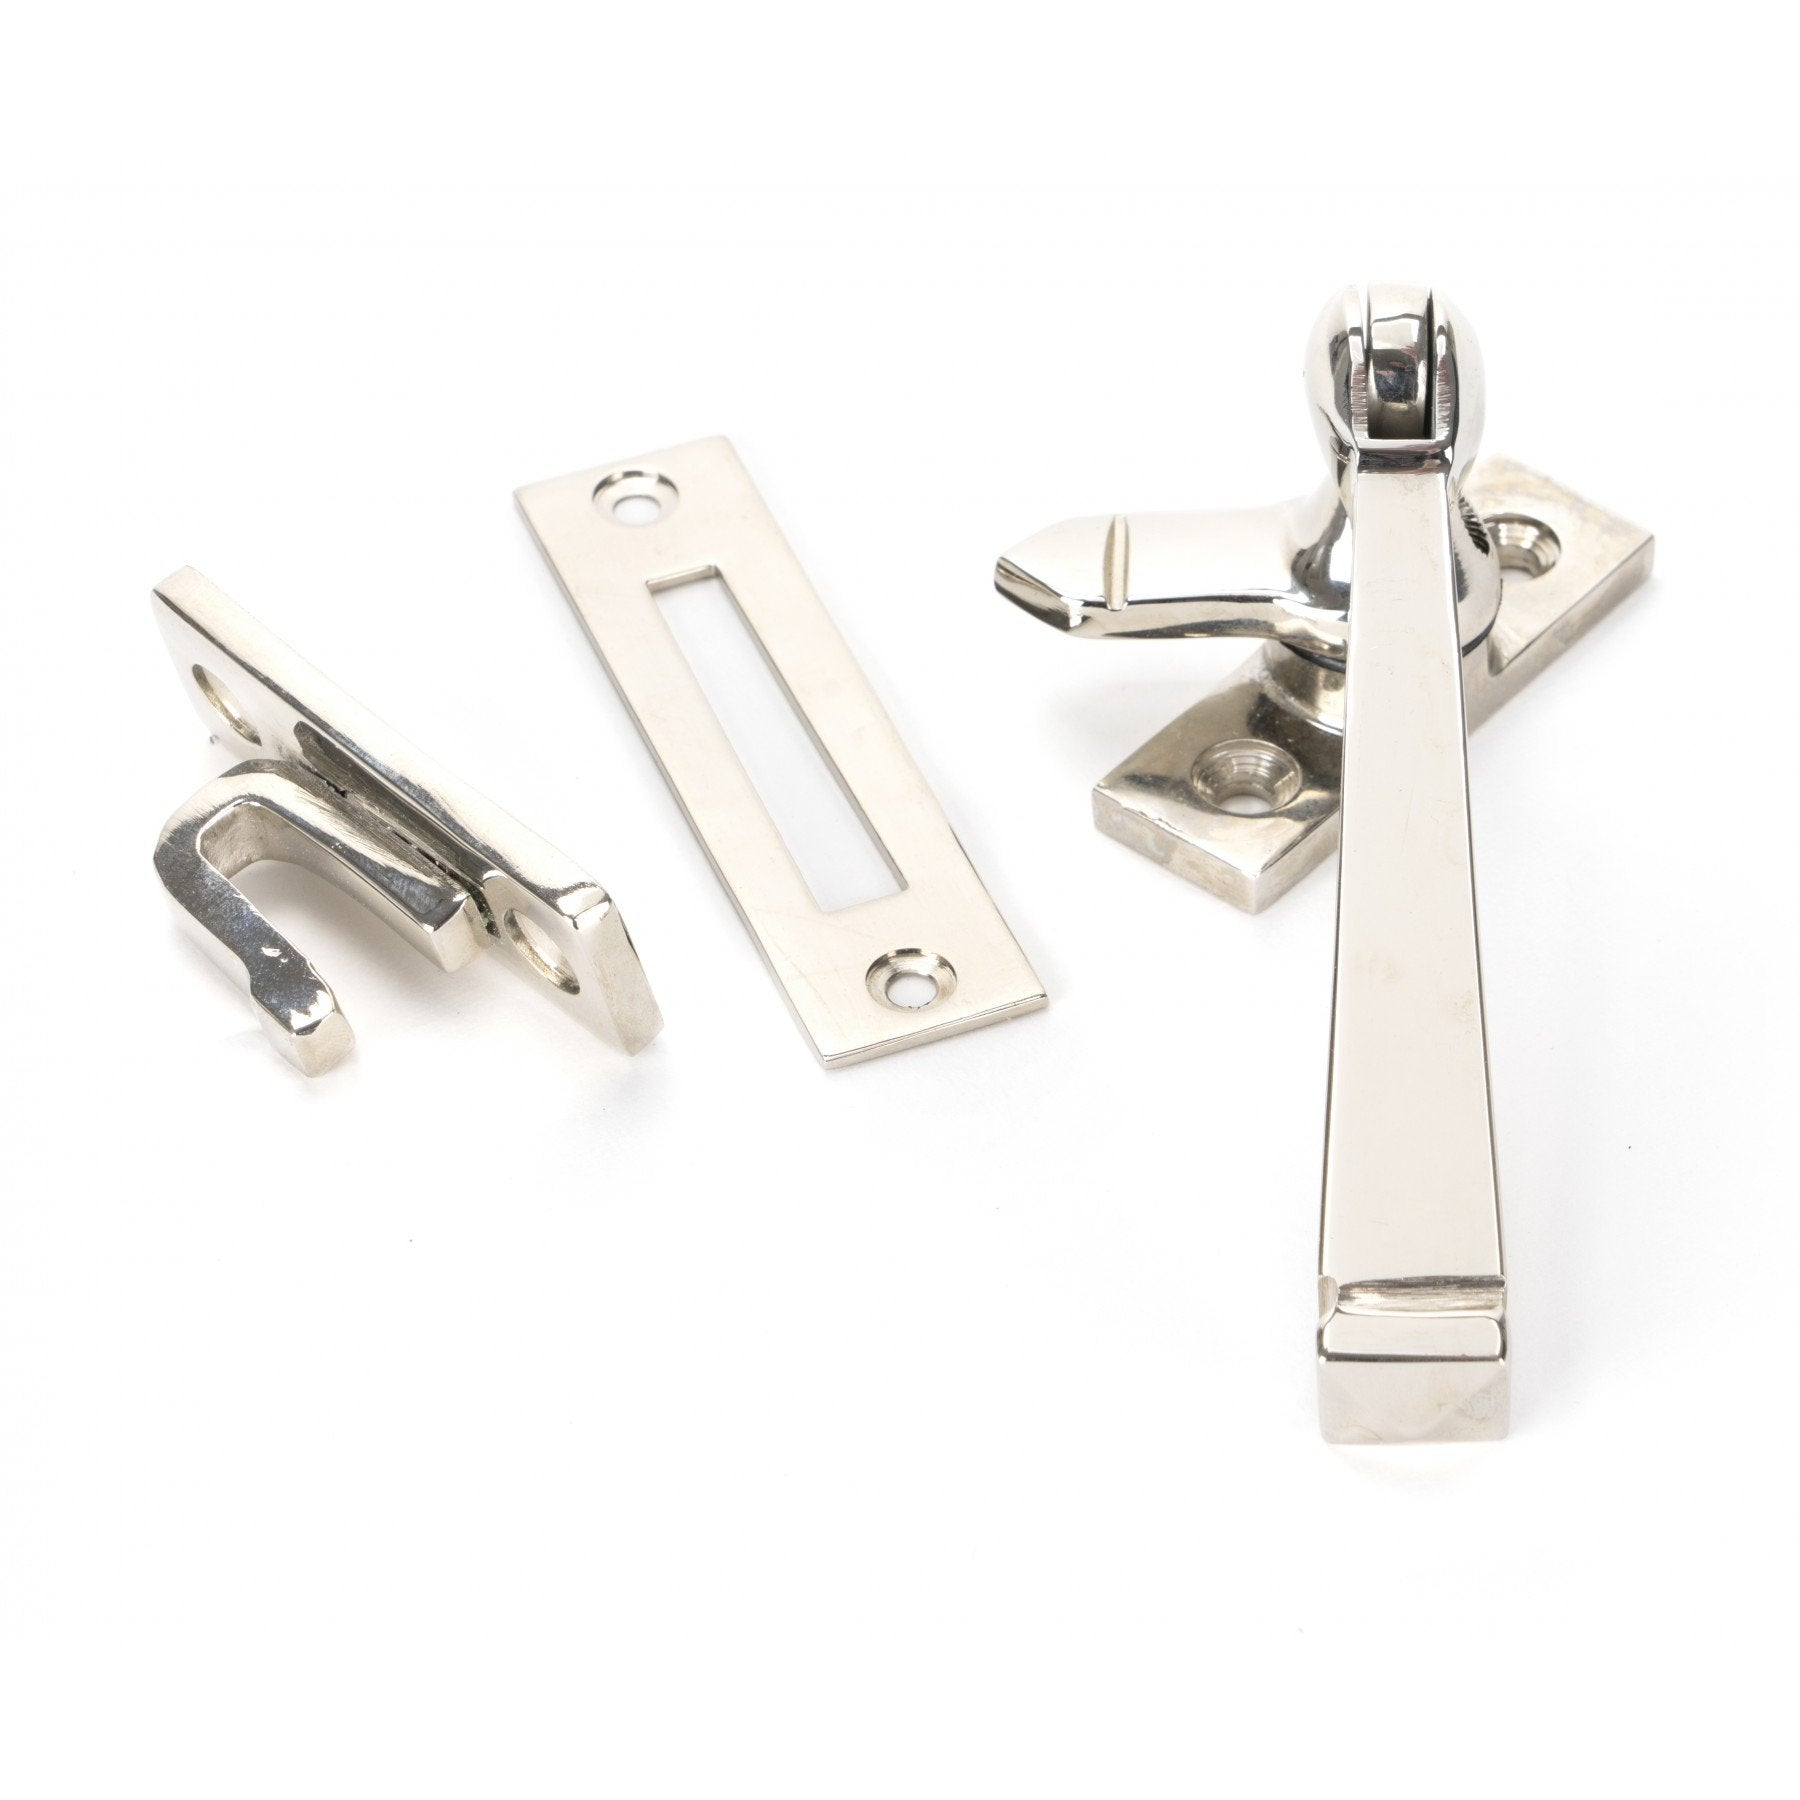 Polished Nickel Locking Avon Fastener - No.42 Interiors